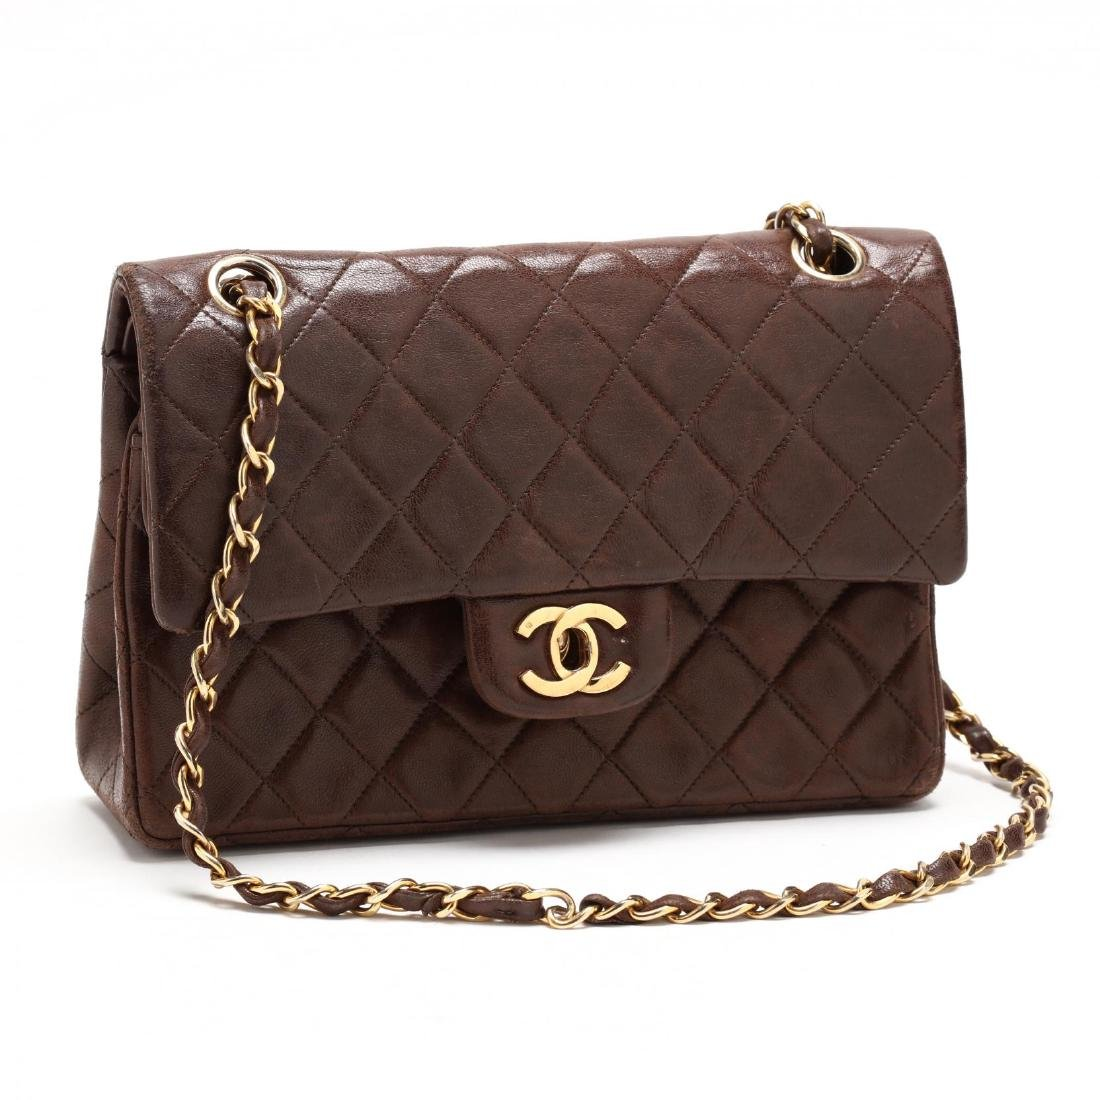 Classic Small Double Flap Shoulder Bag, Chanel